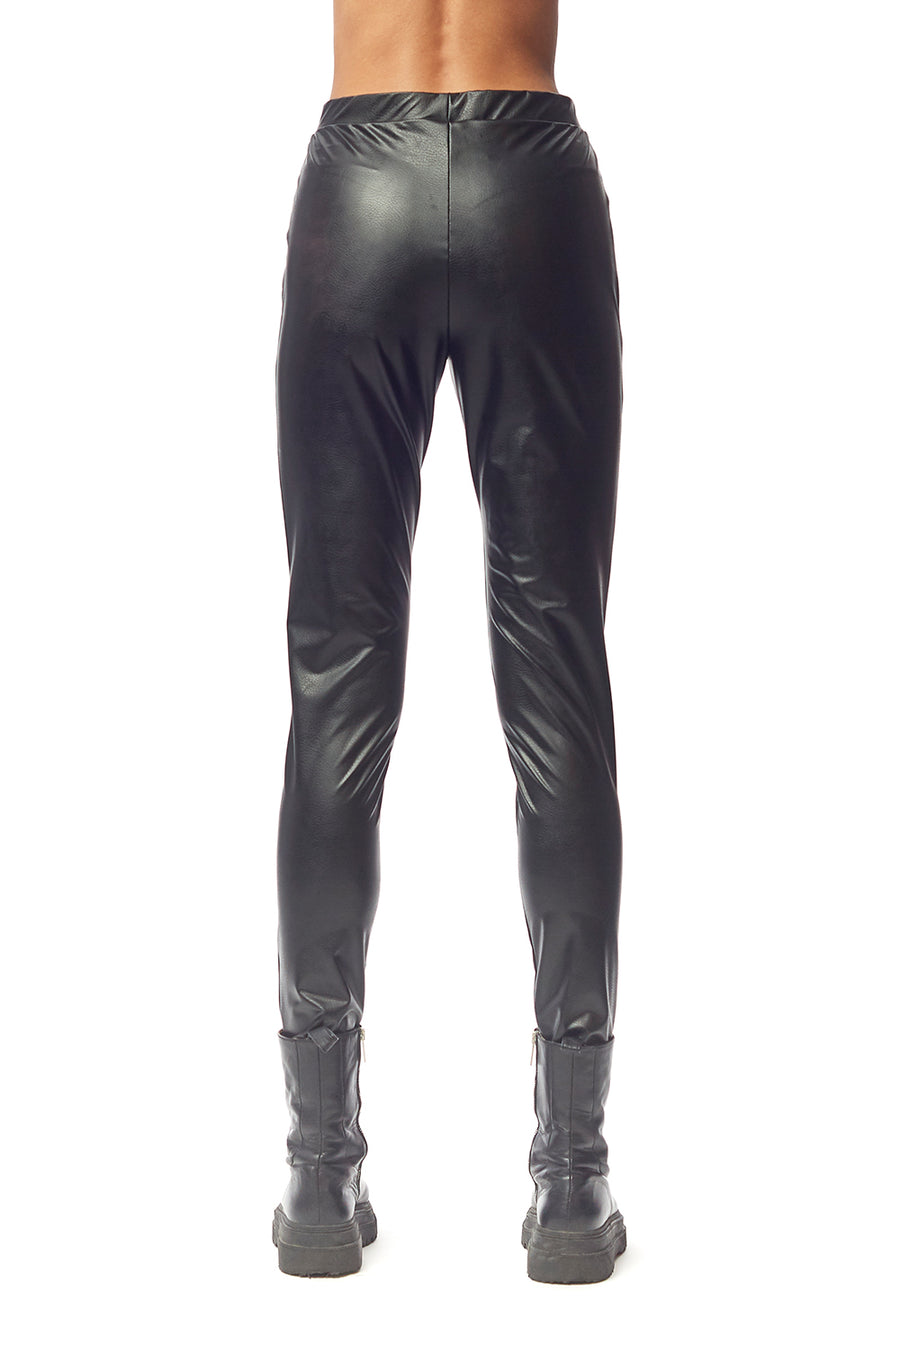 Luciana Basic Legging Black Matte Leatherette